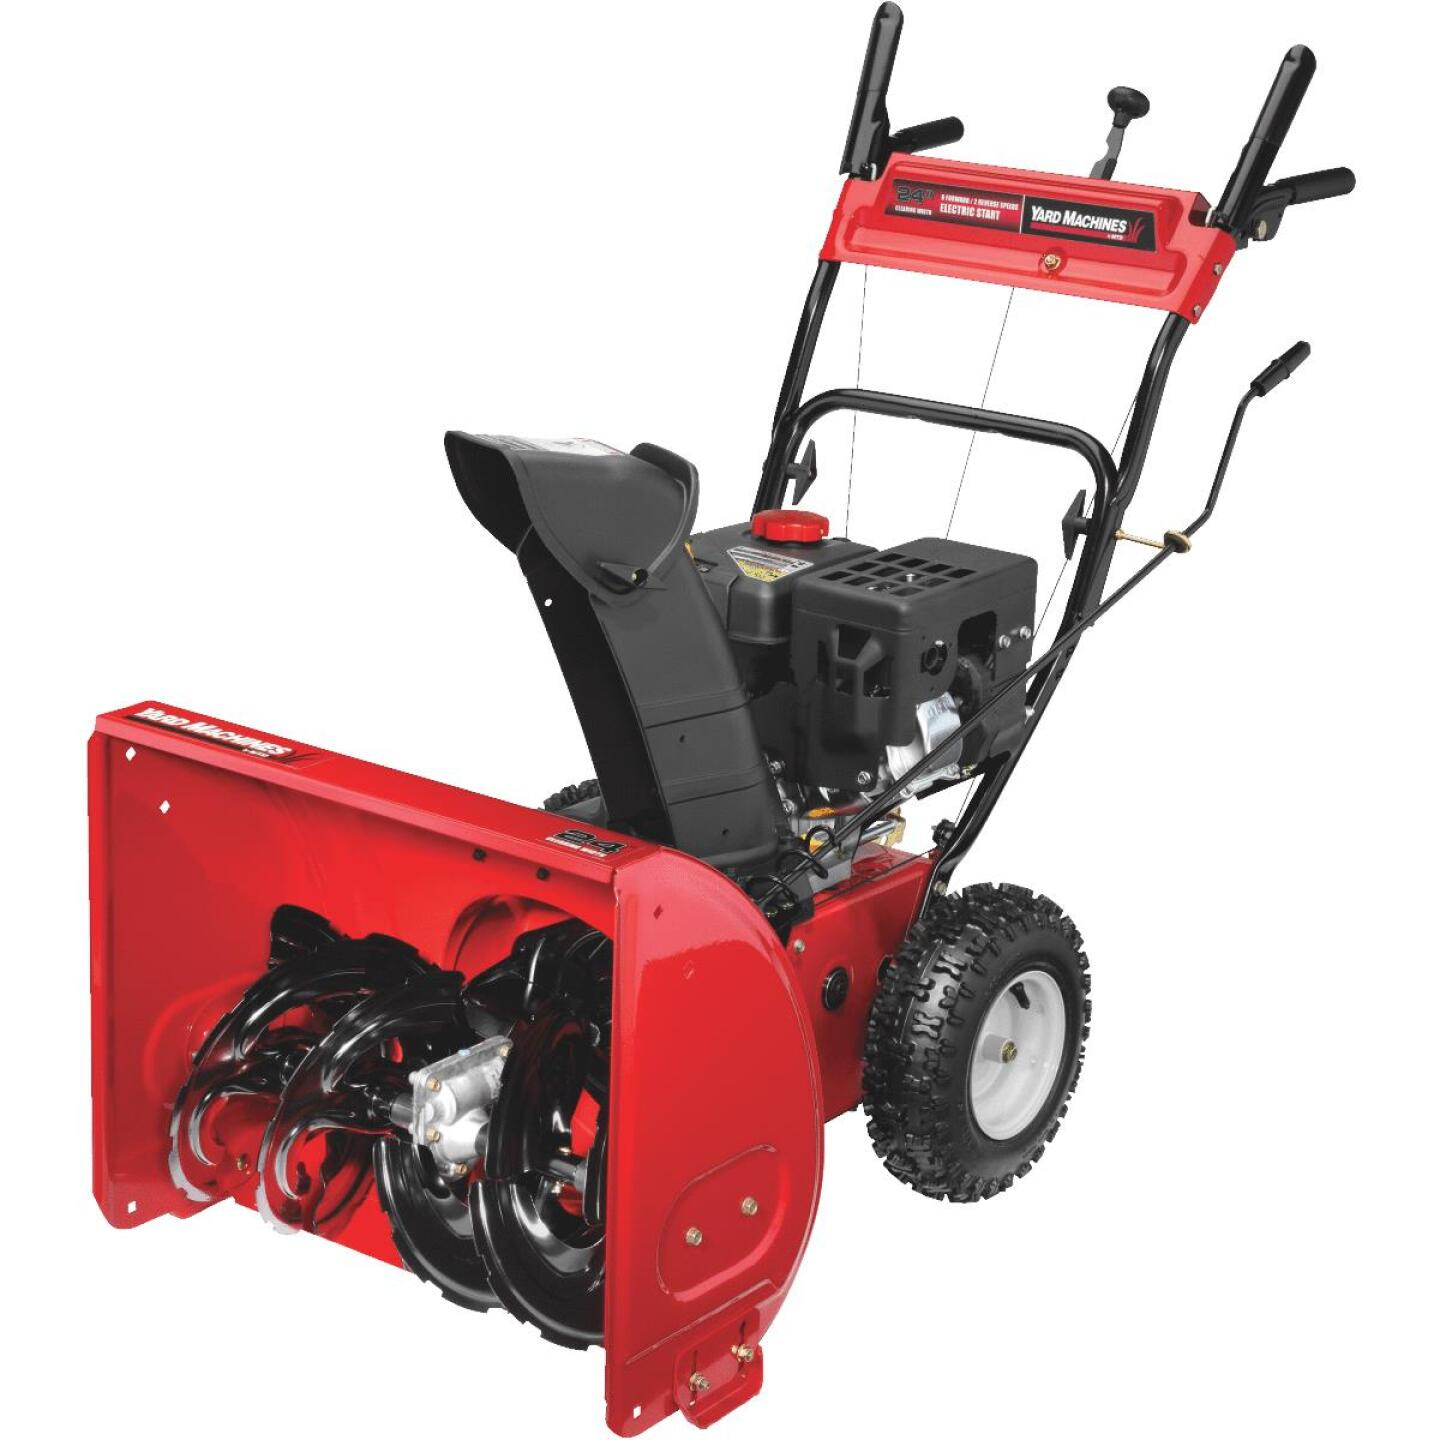 Yard Machine 24 In. 208cc 2-Stage Gas Snow Blower Image 2